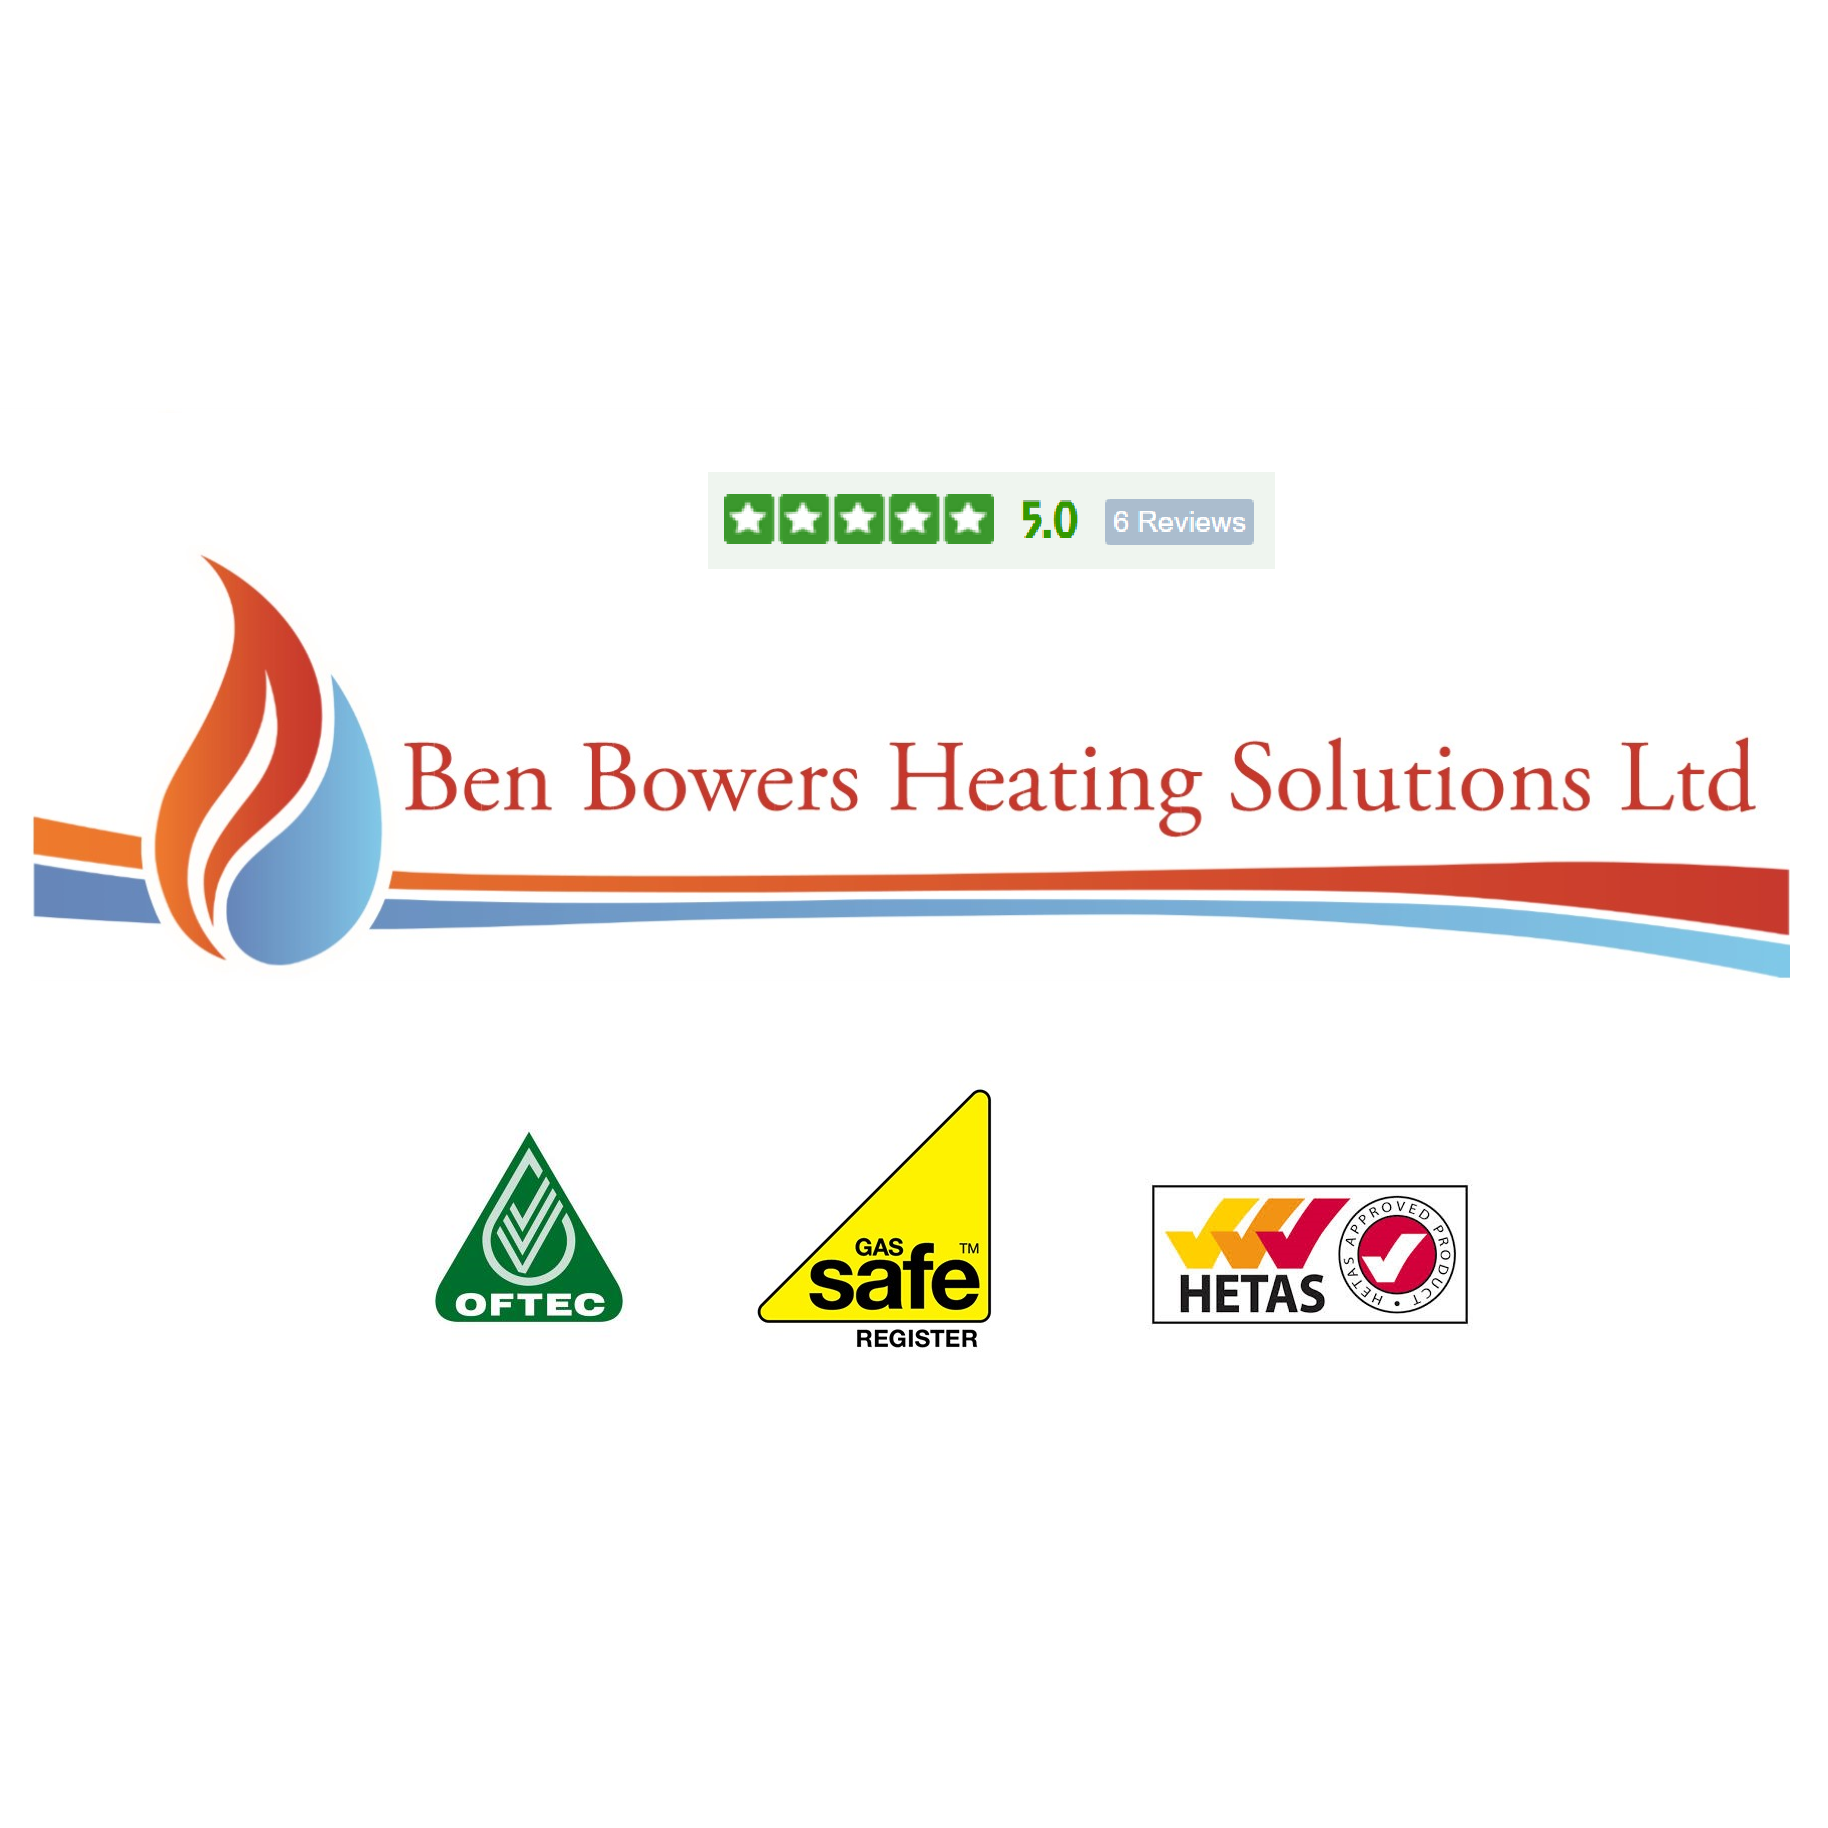 Ben Bowers Heating Solutions Ltd - Tewkesbury, Gloucestershire GL20 6DW - 01684 210614 | ShowMeLocal.com